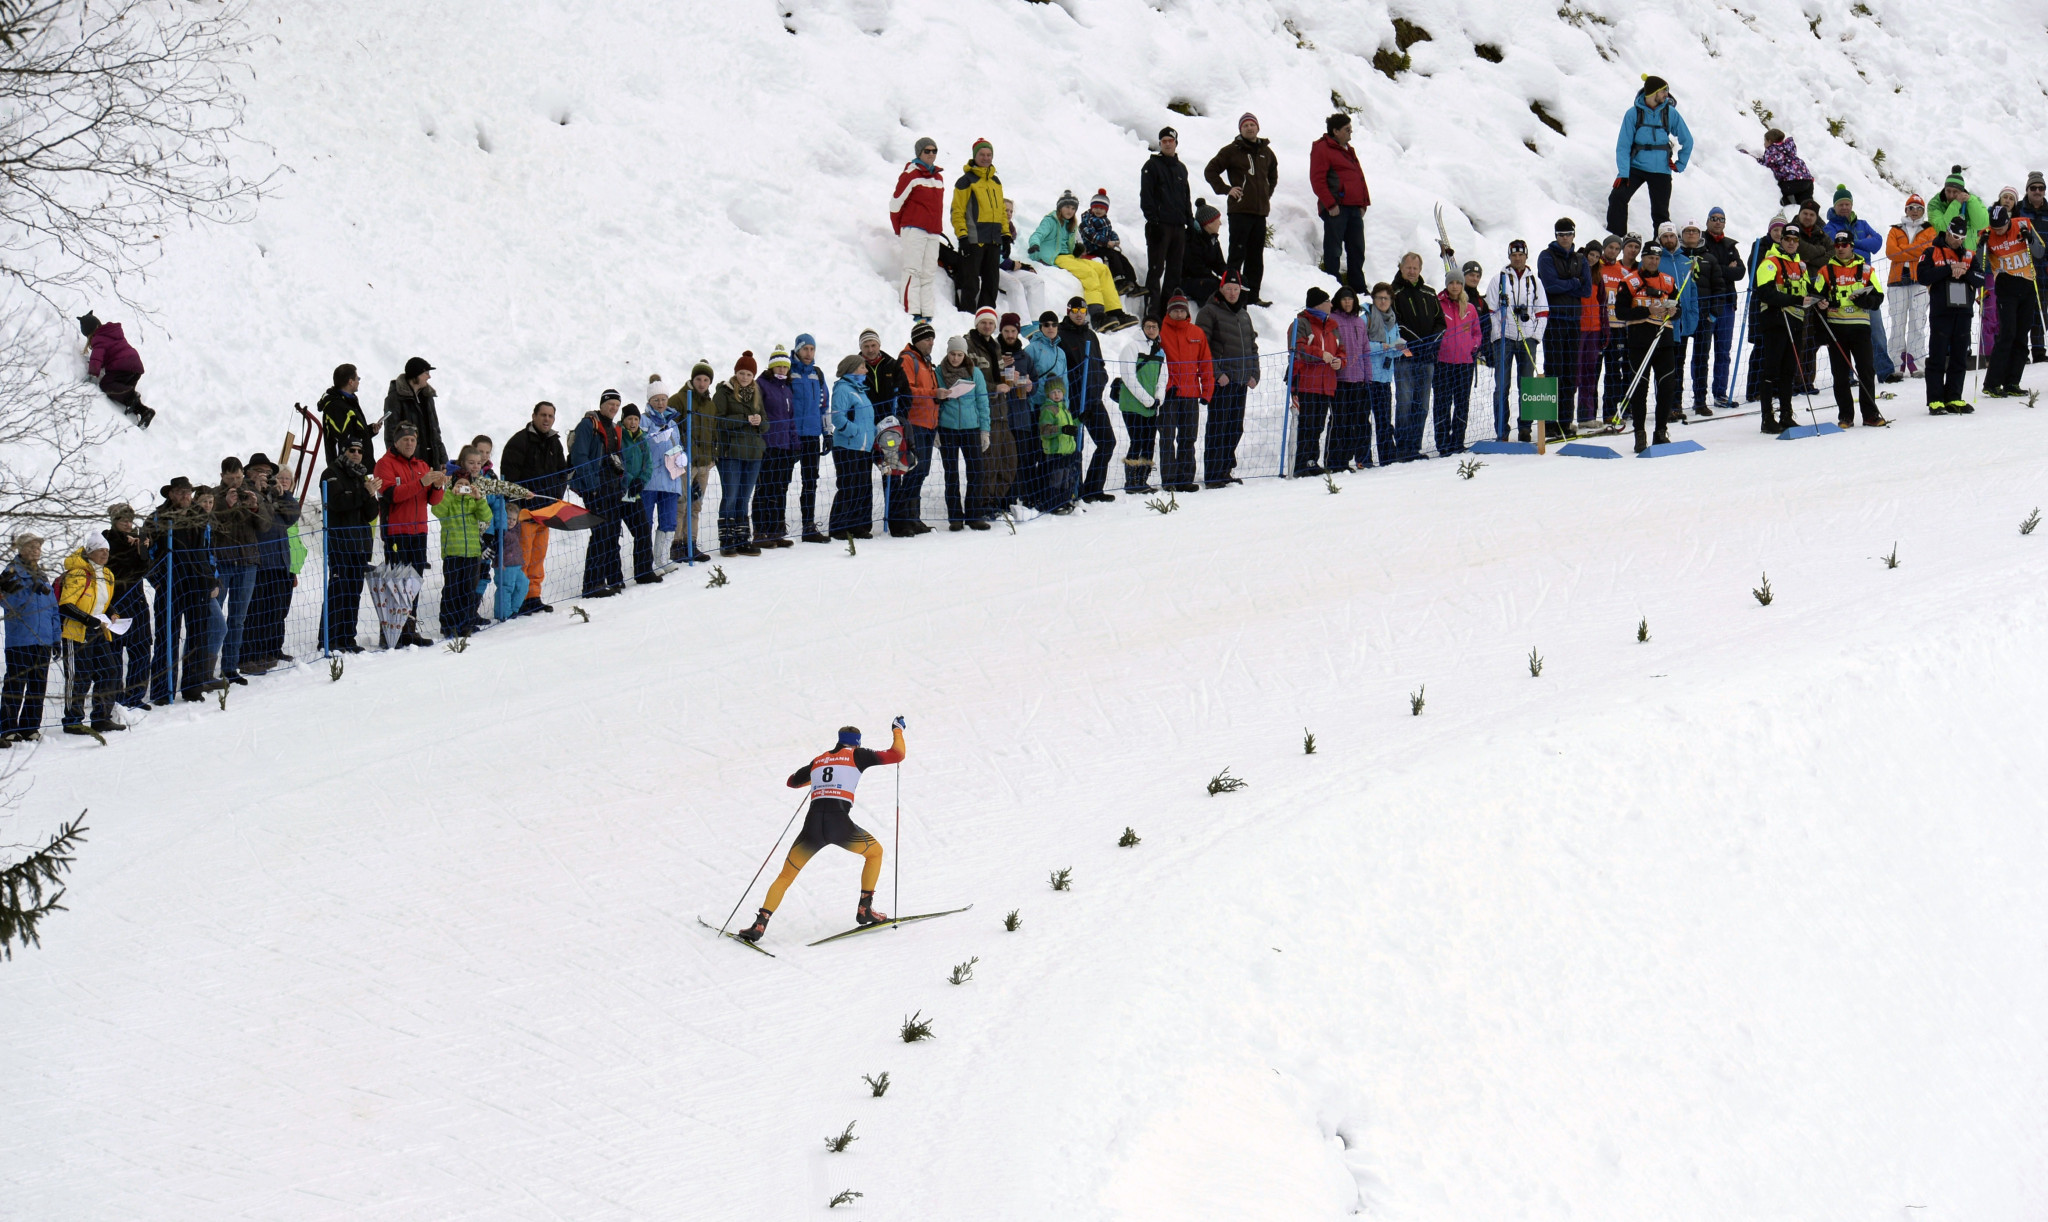 Germany's Wick announces cross-country skiing retirement